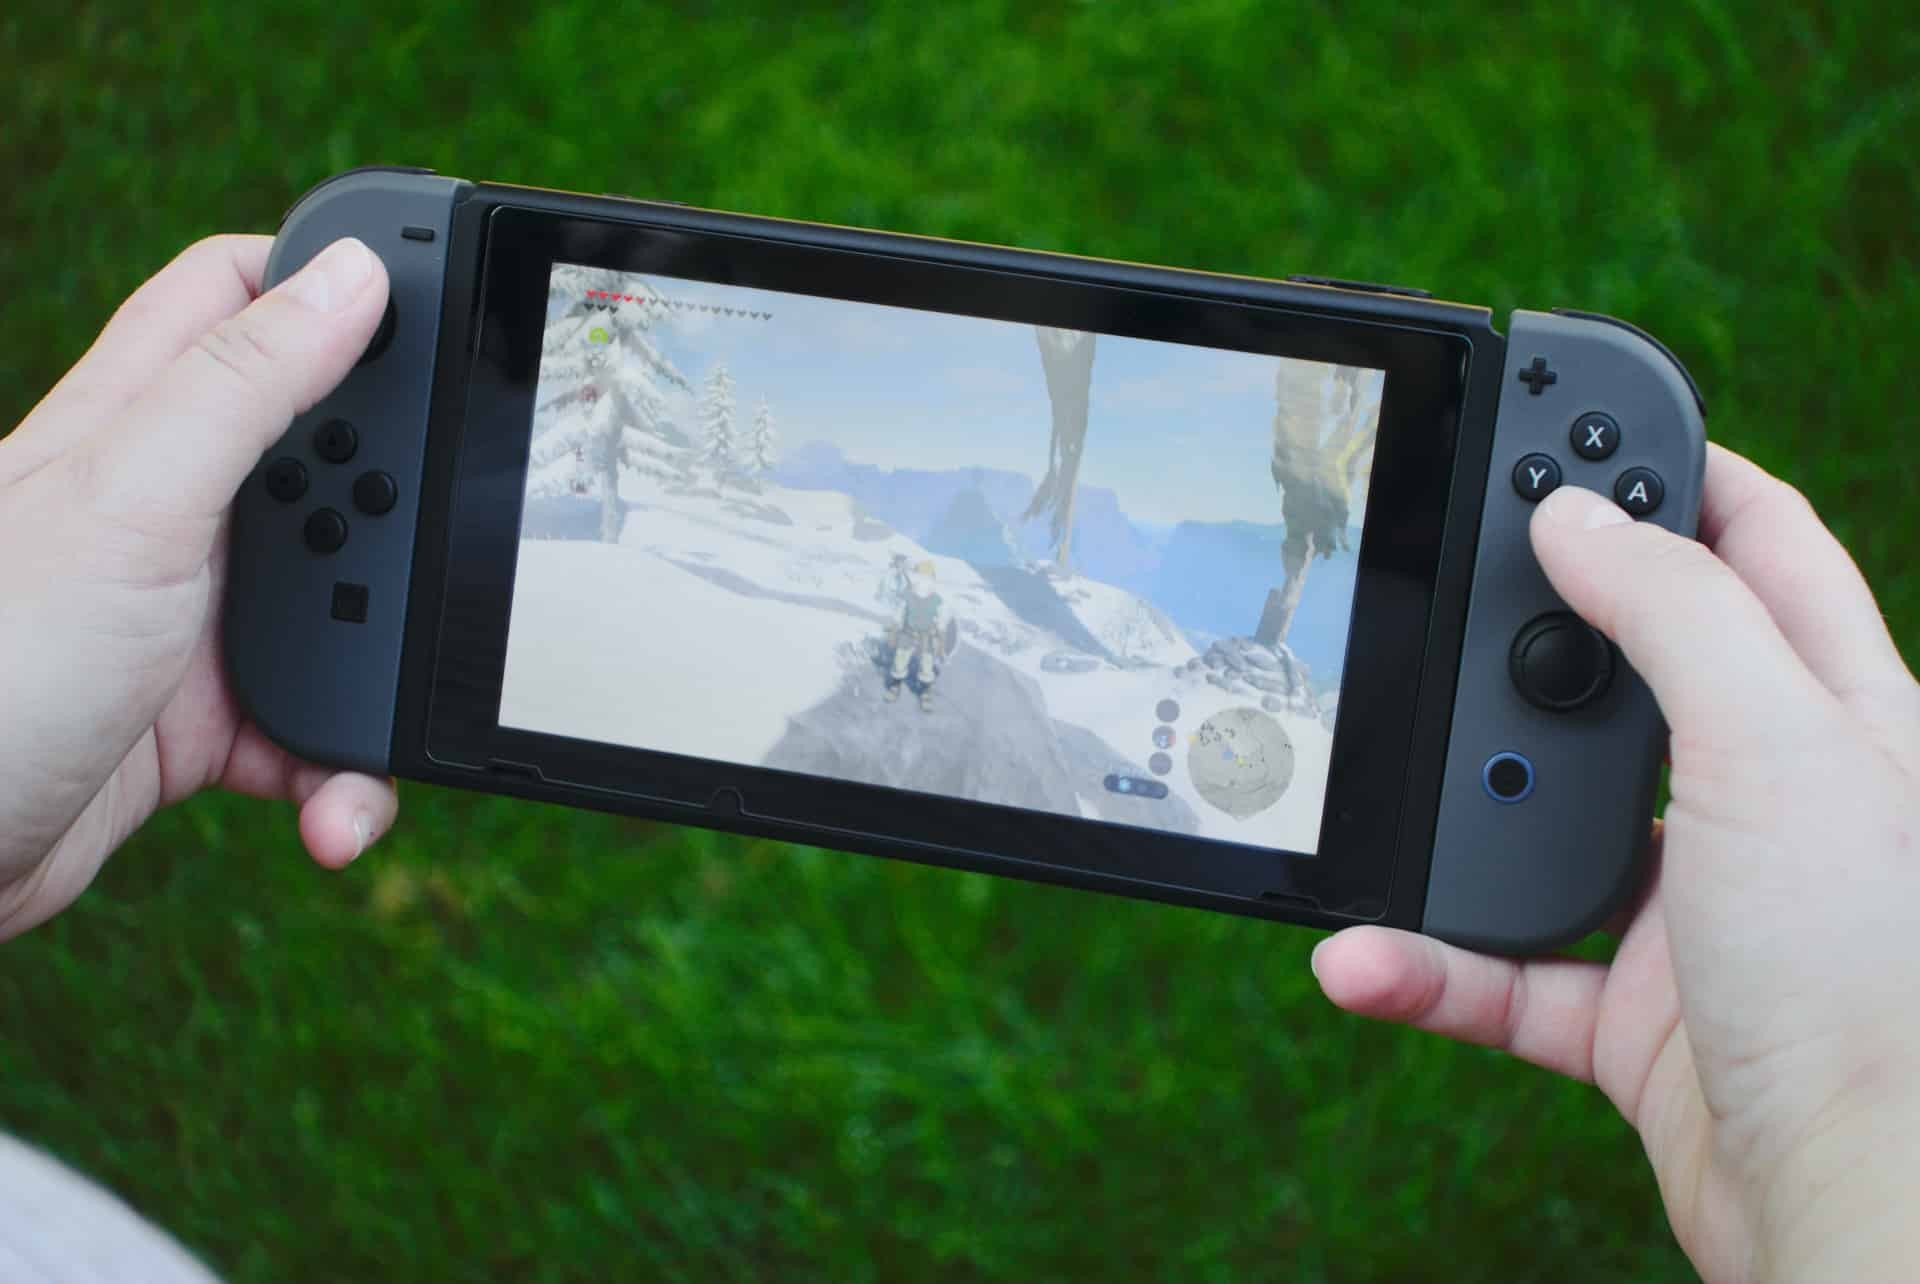 The Nintendo Switch portable gaming console. ($300)